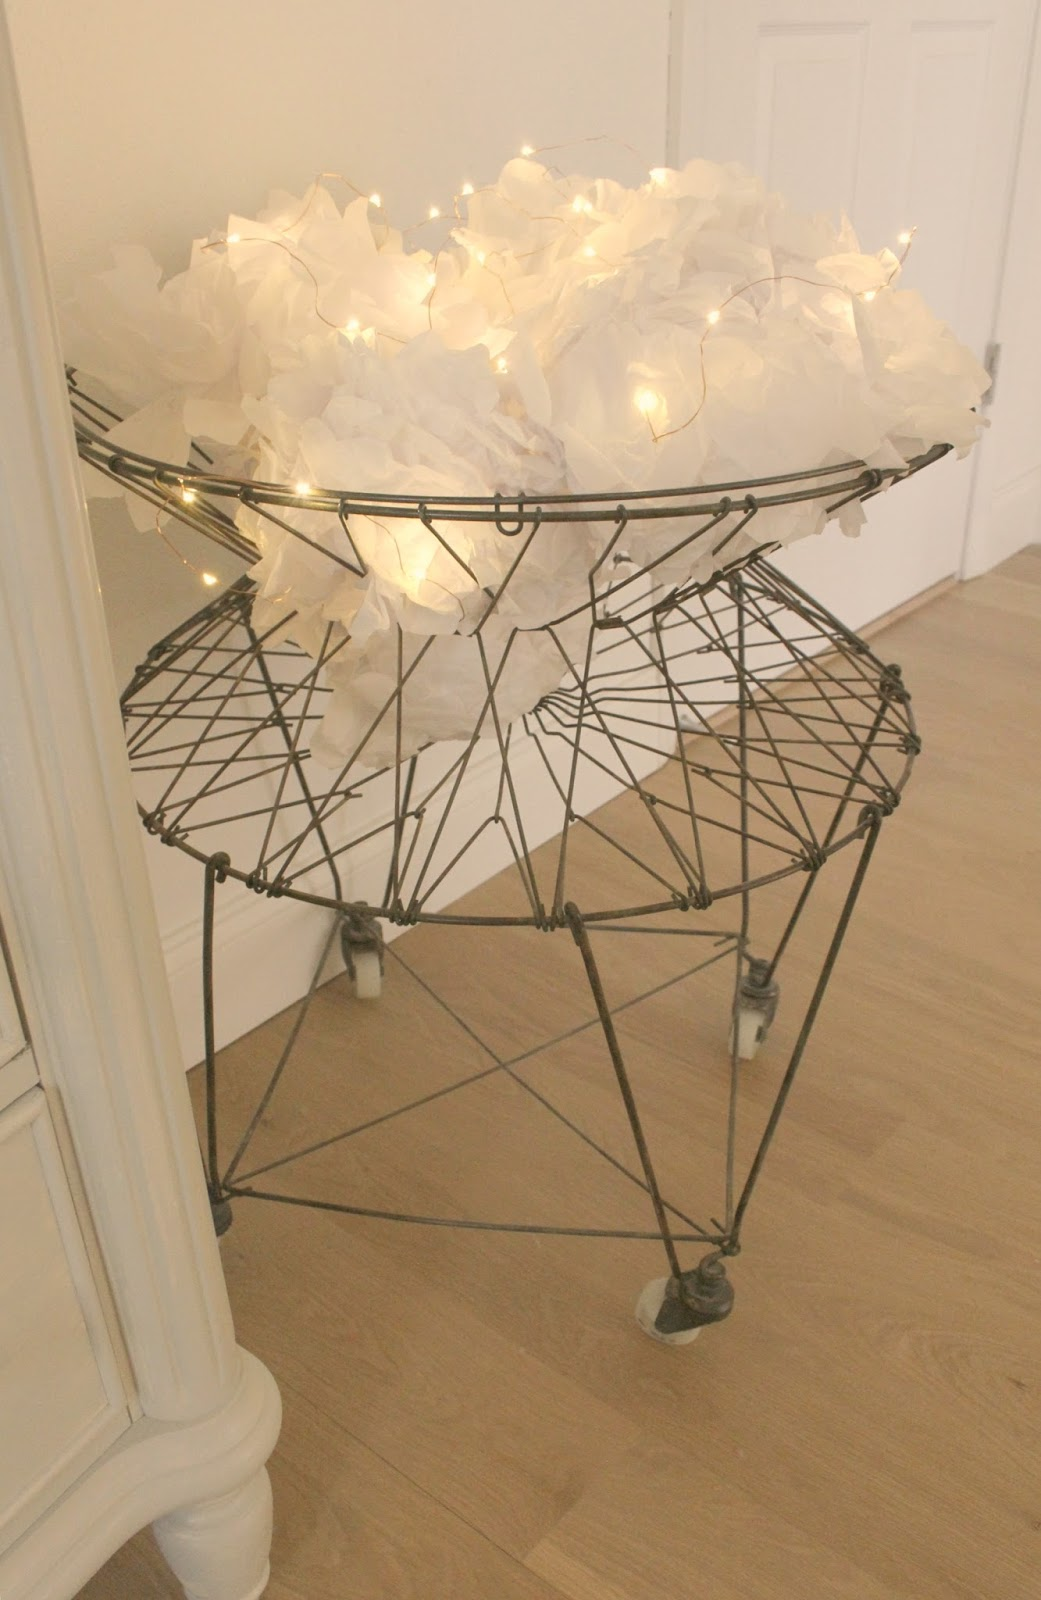 Vintage French wire laundry basket with white tissue poufs and fairy lights